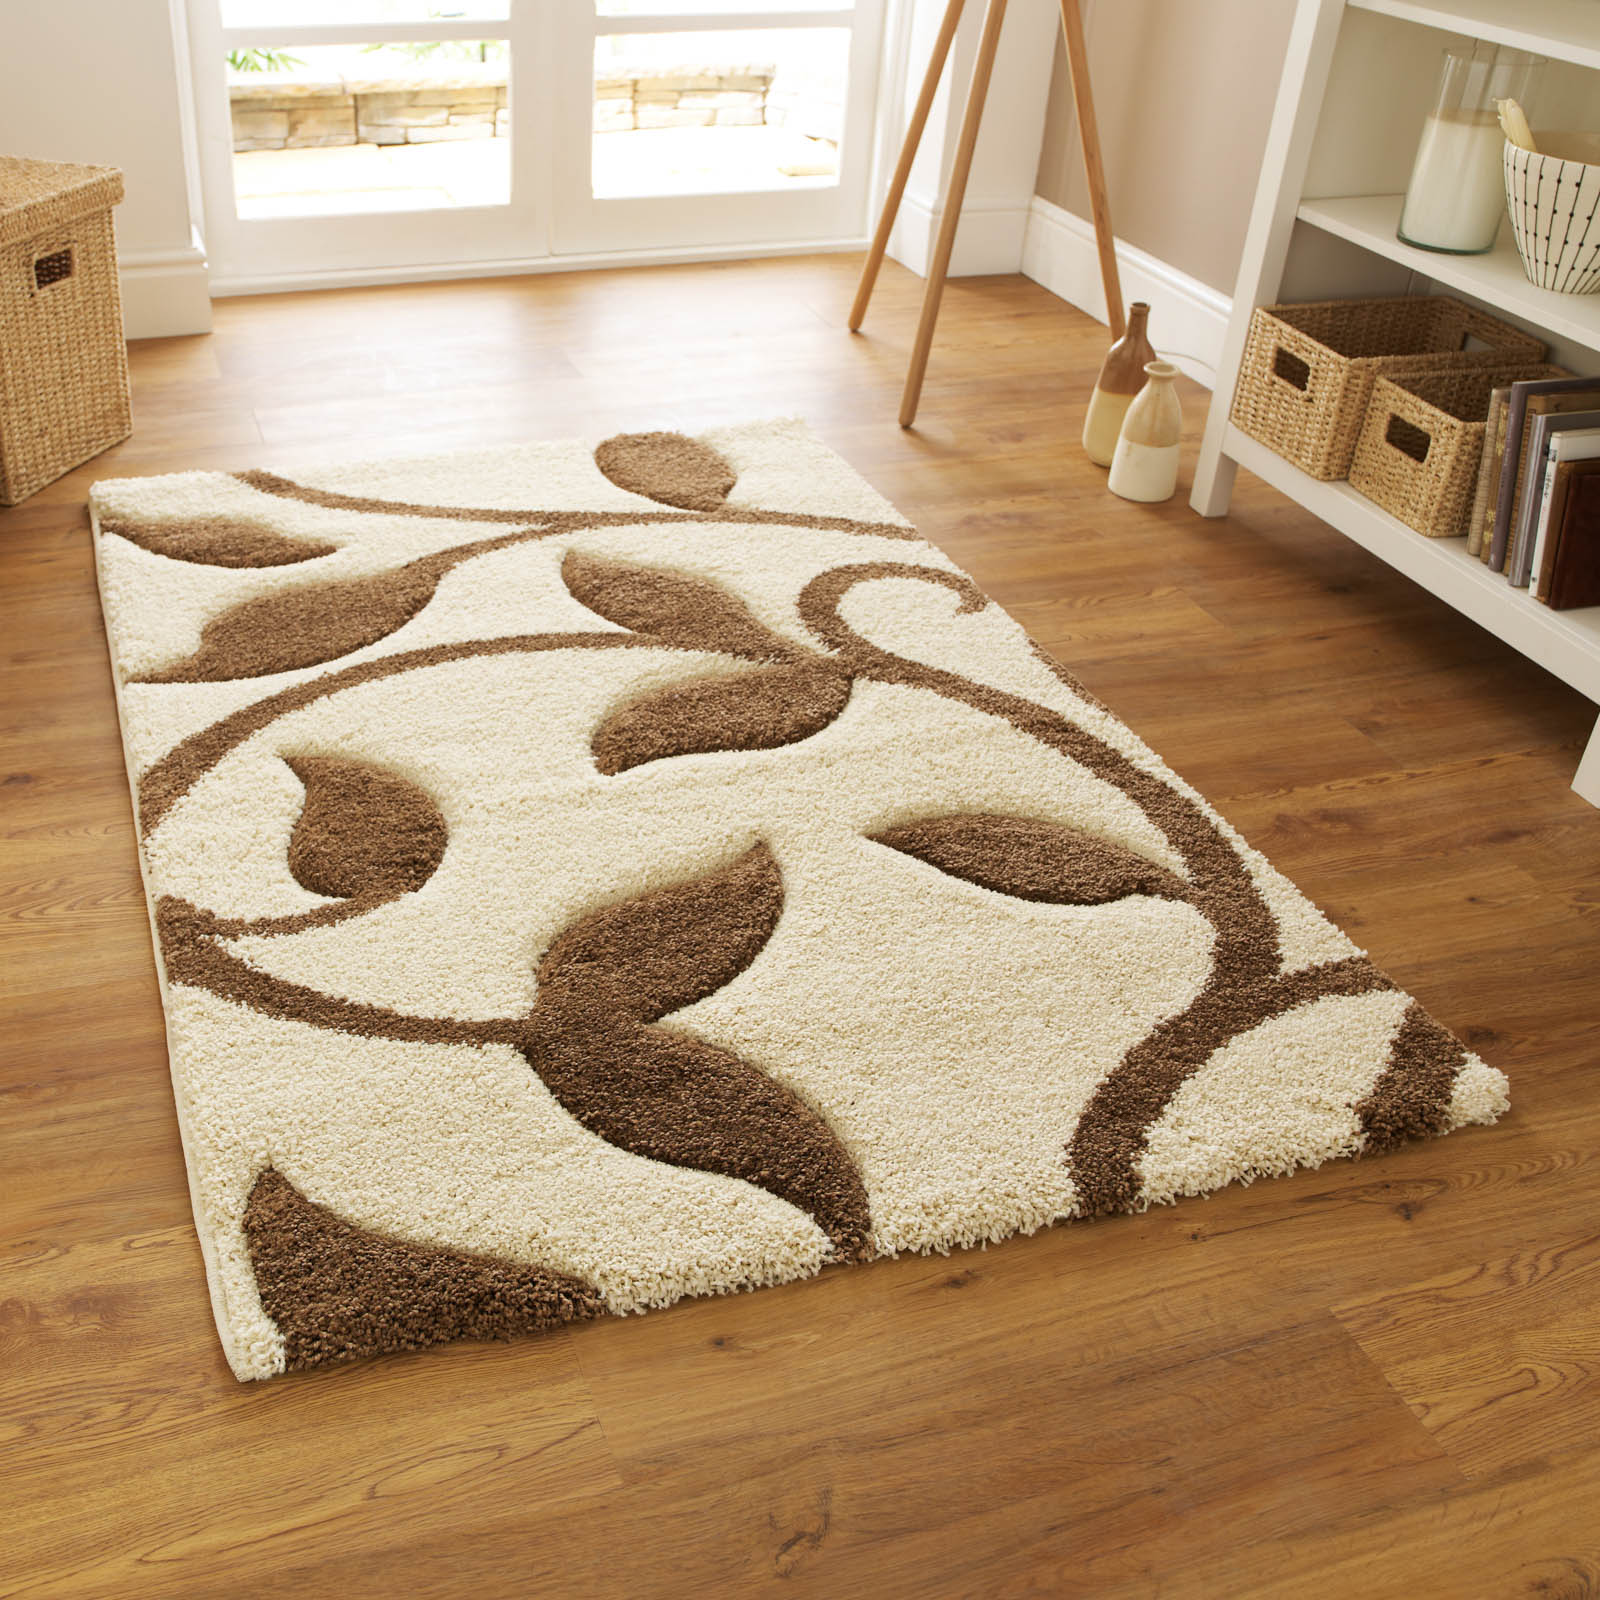 Fashion Carving 7647 Rugs in Ivory Beige